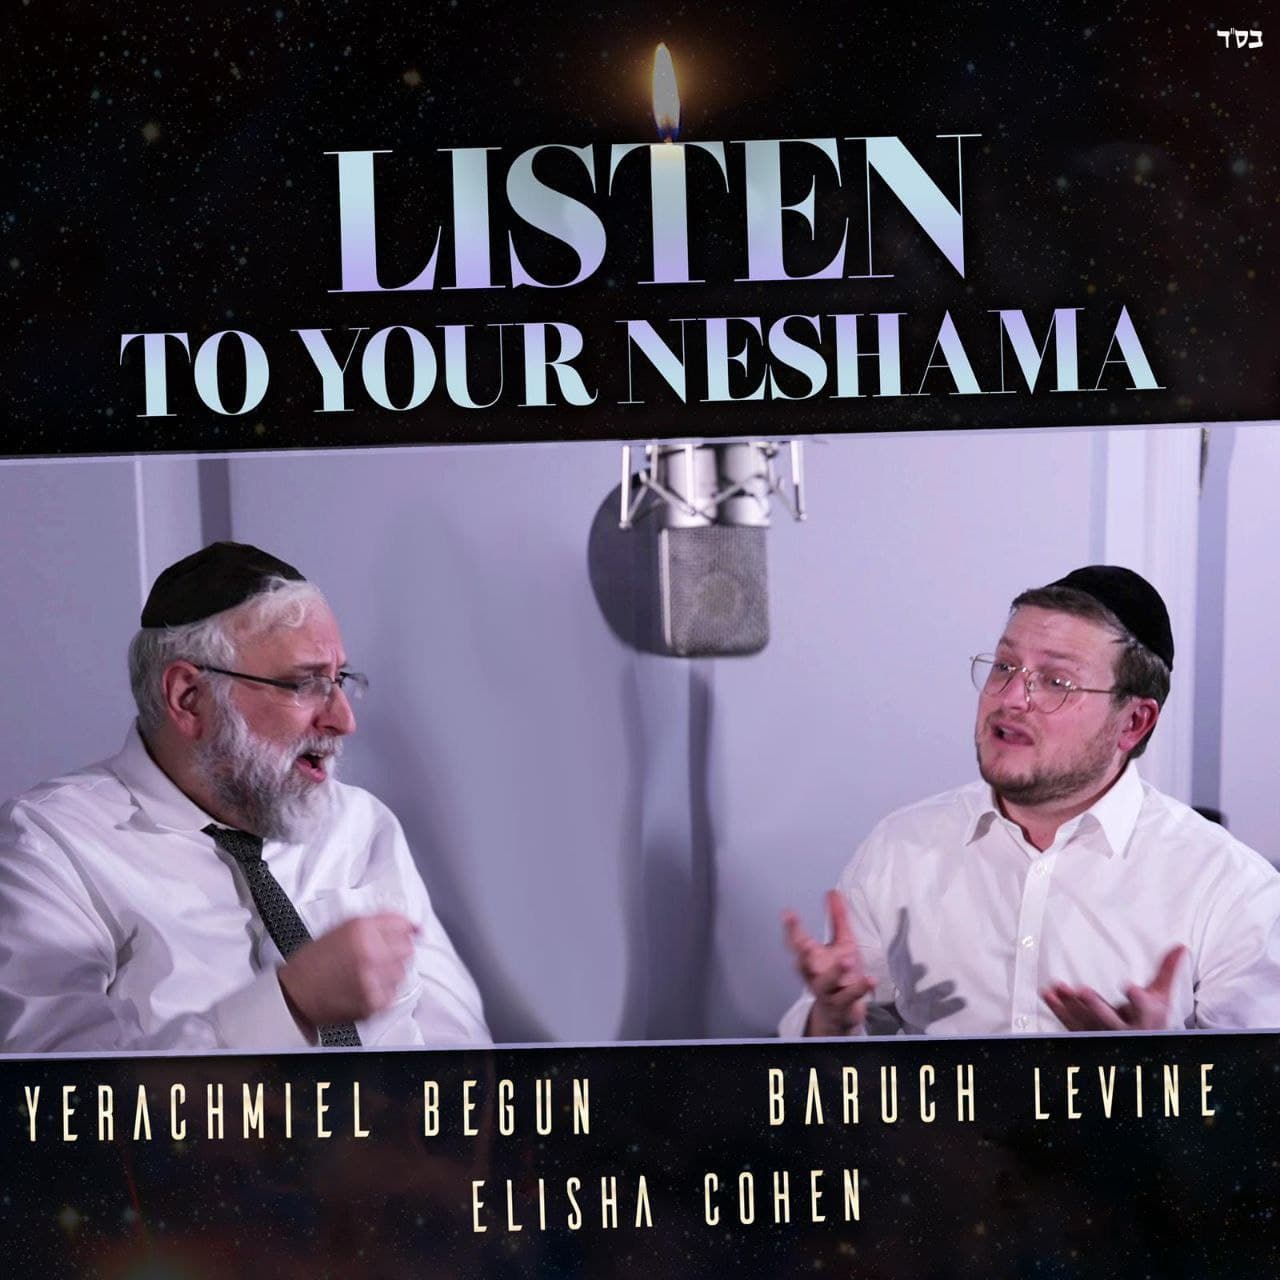 Yerachmiel Begun & Baruch Levine - Listen to Your Neshama (single)